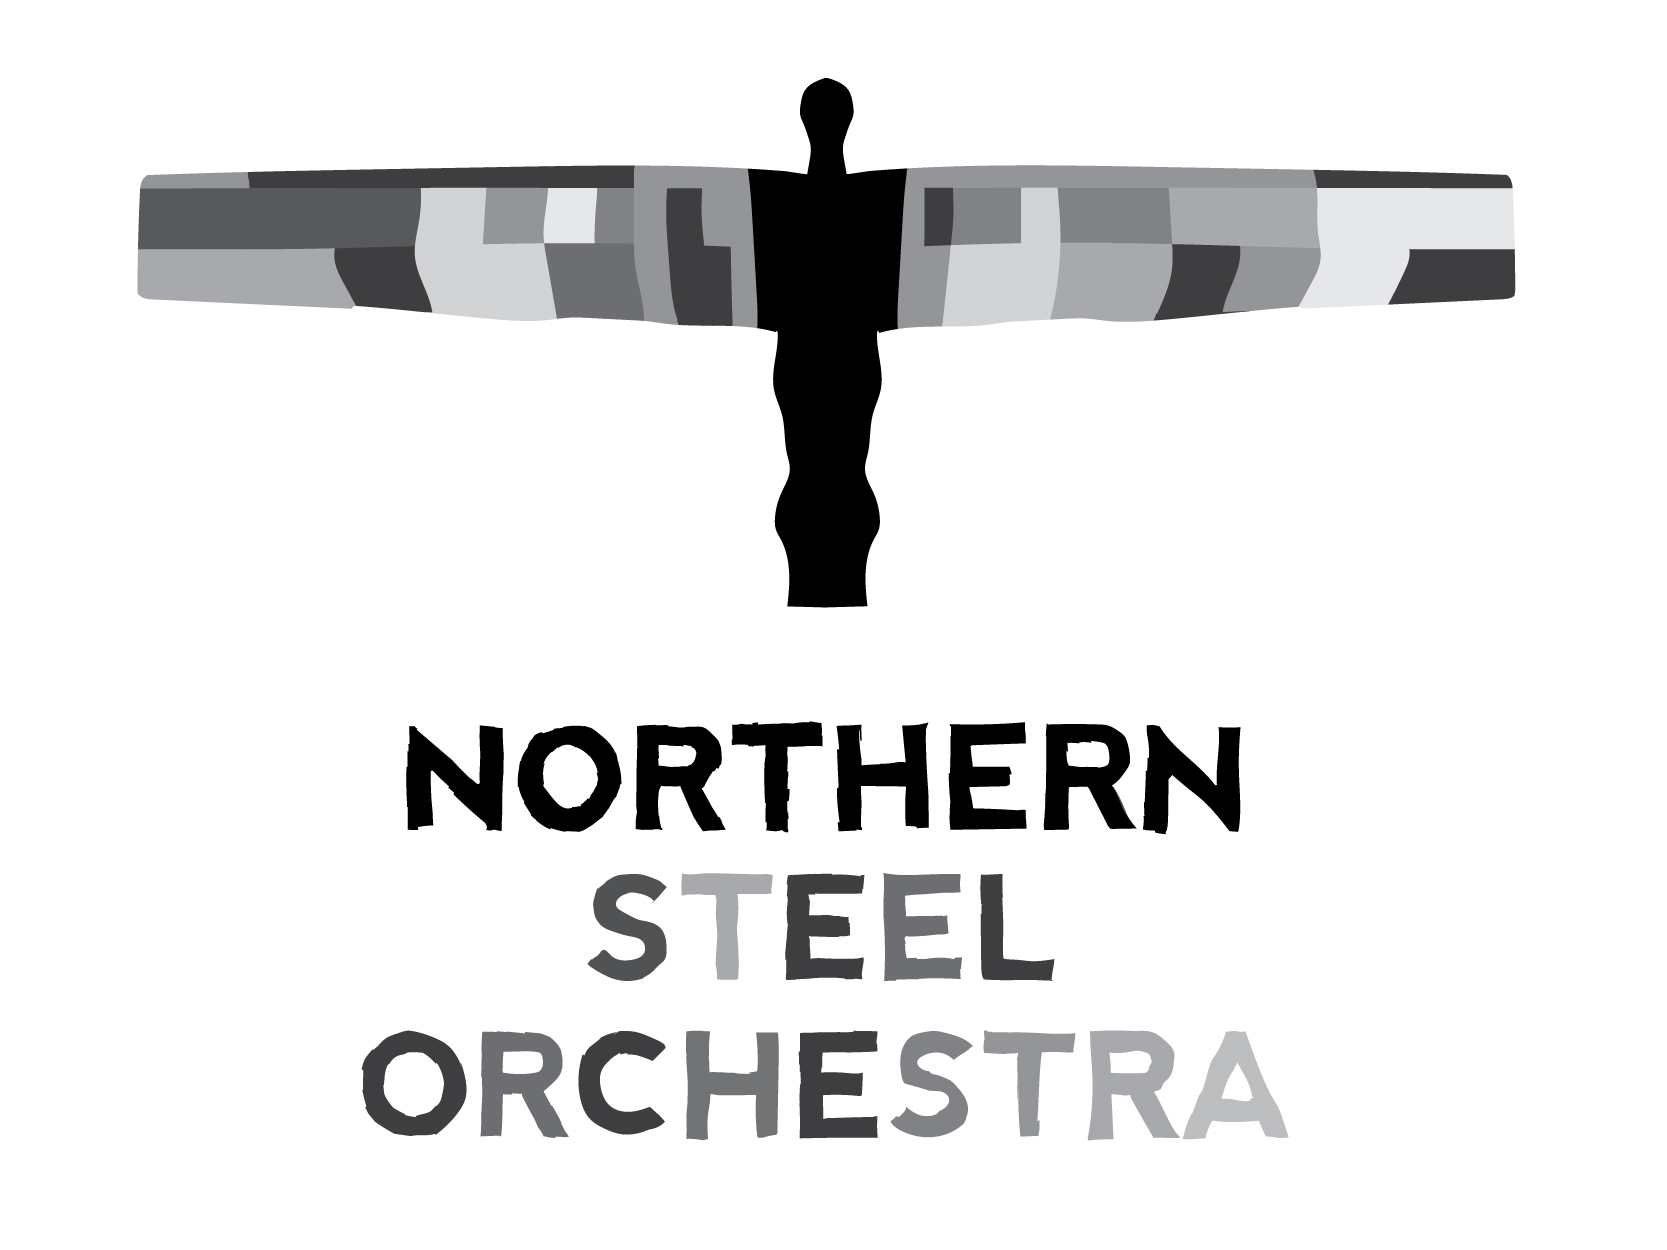 Northern_steel_orchestra-31